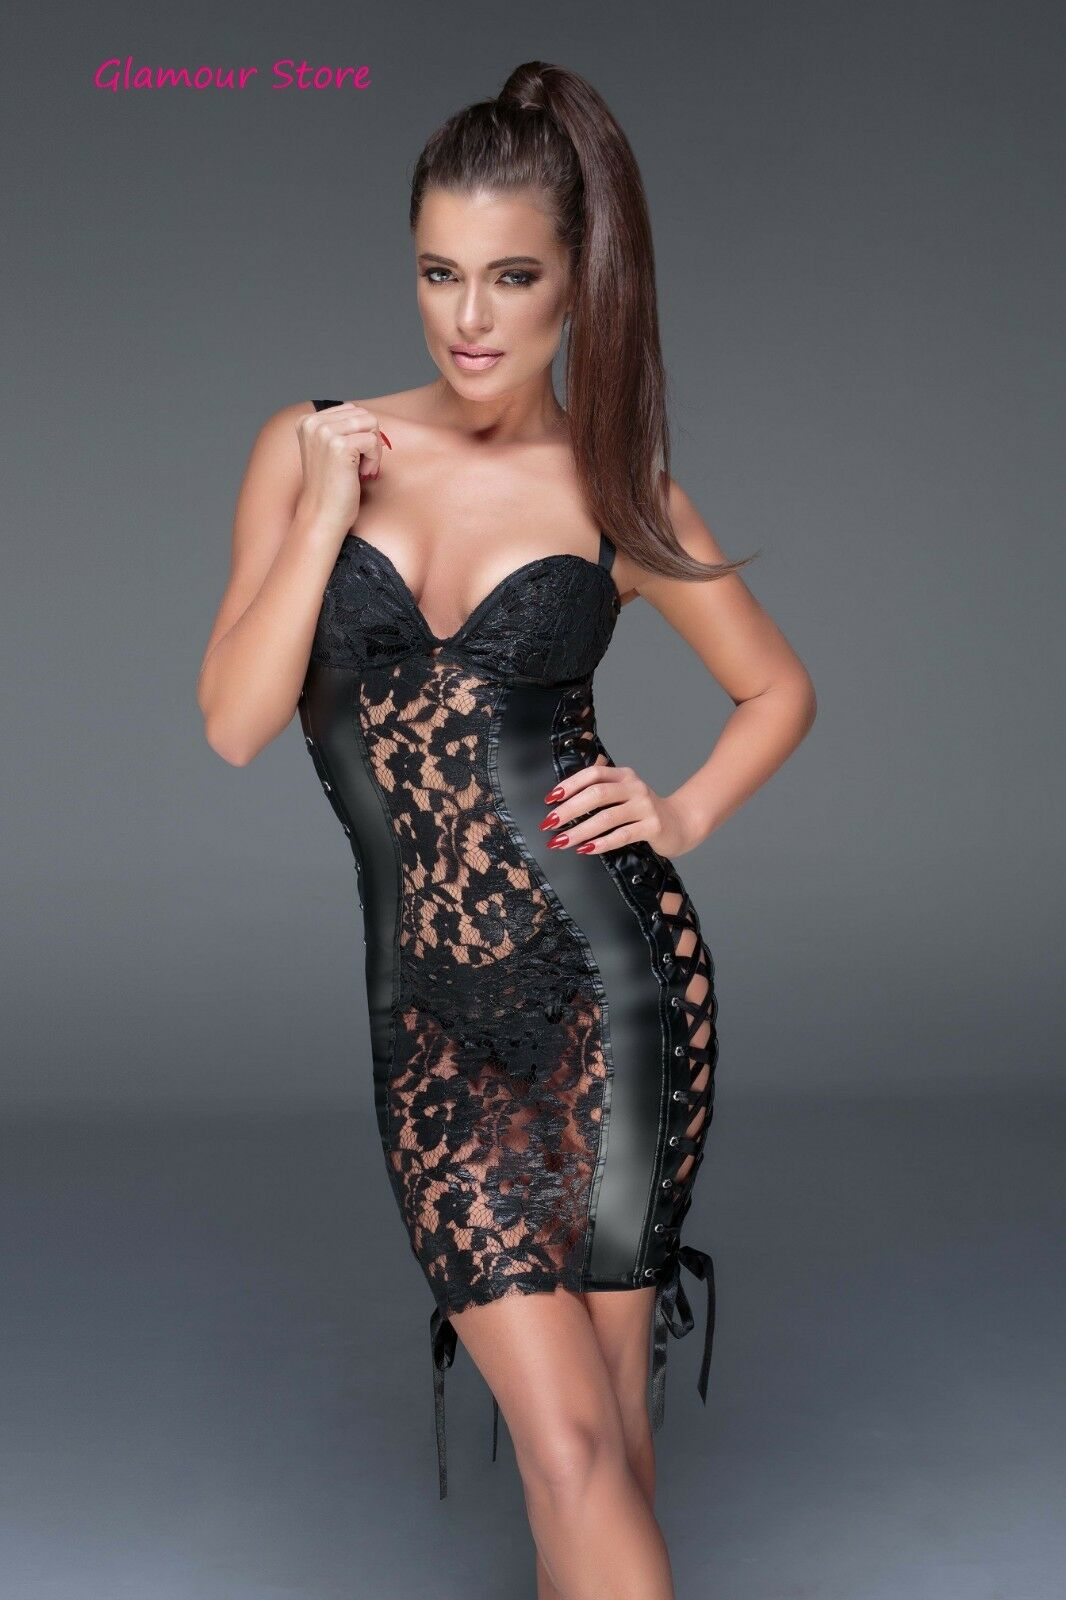 Sexy ABITO powerwetlook PIZZO black S, M, L, XL, 2L, 3XL (40-50) tubino GLAMOUR